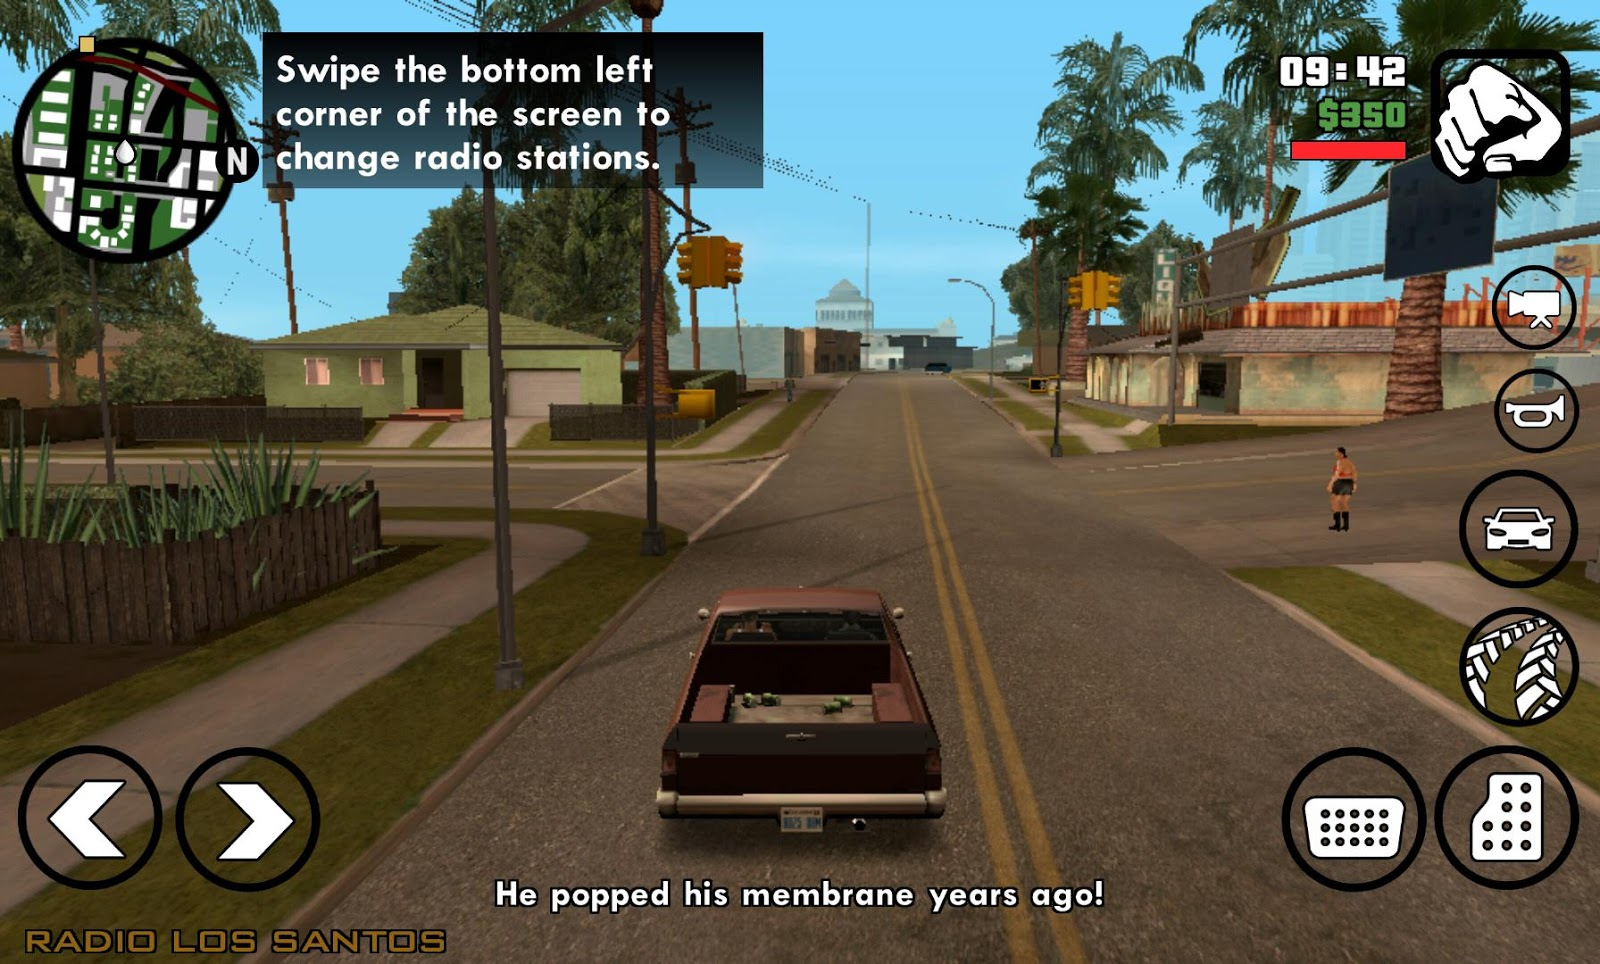 Grand Theft Auto : San Andreas APK + OBB Data For Android